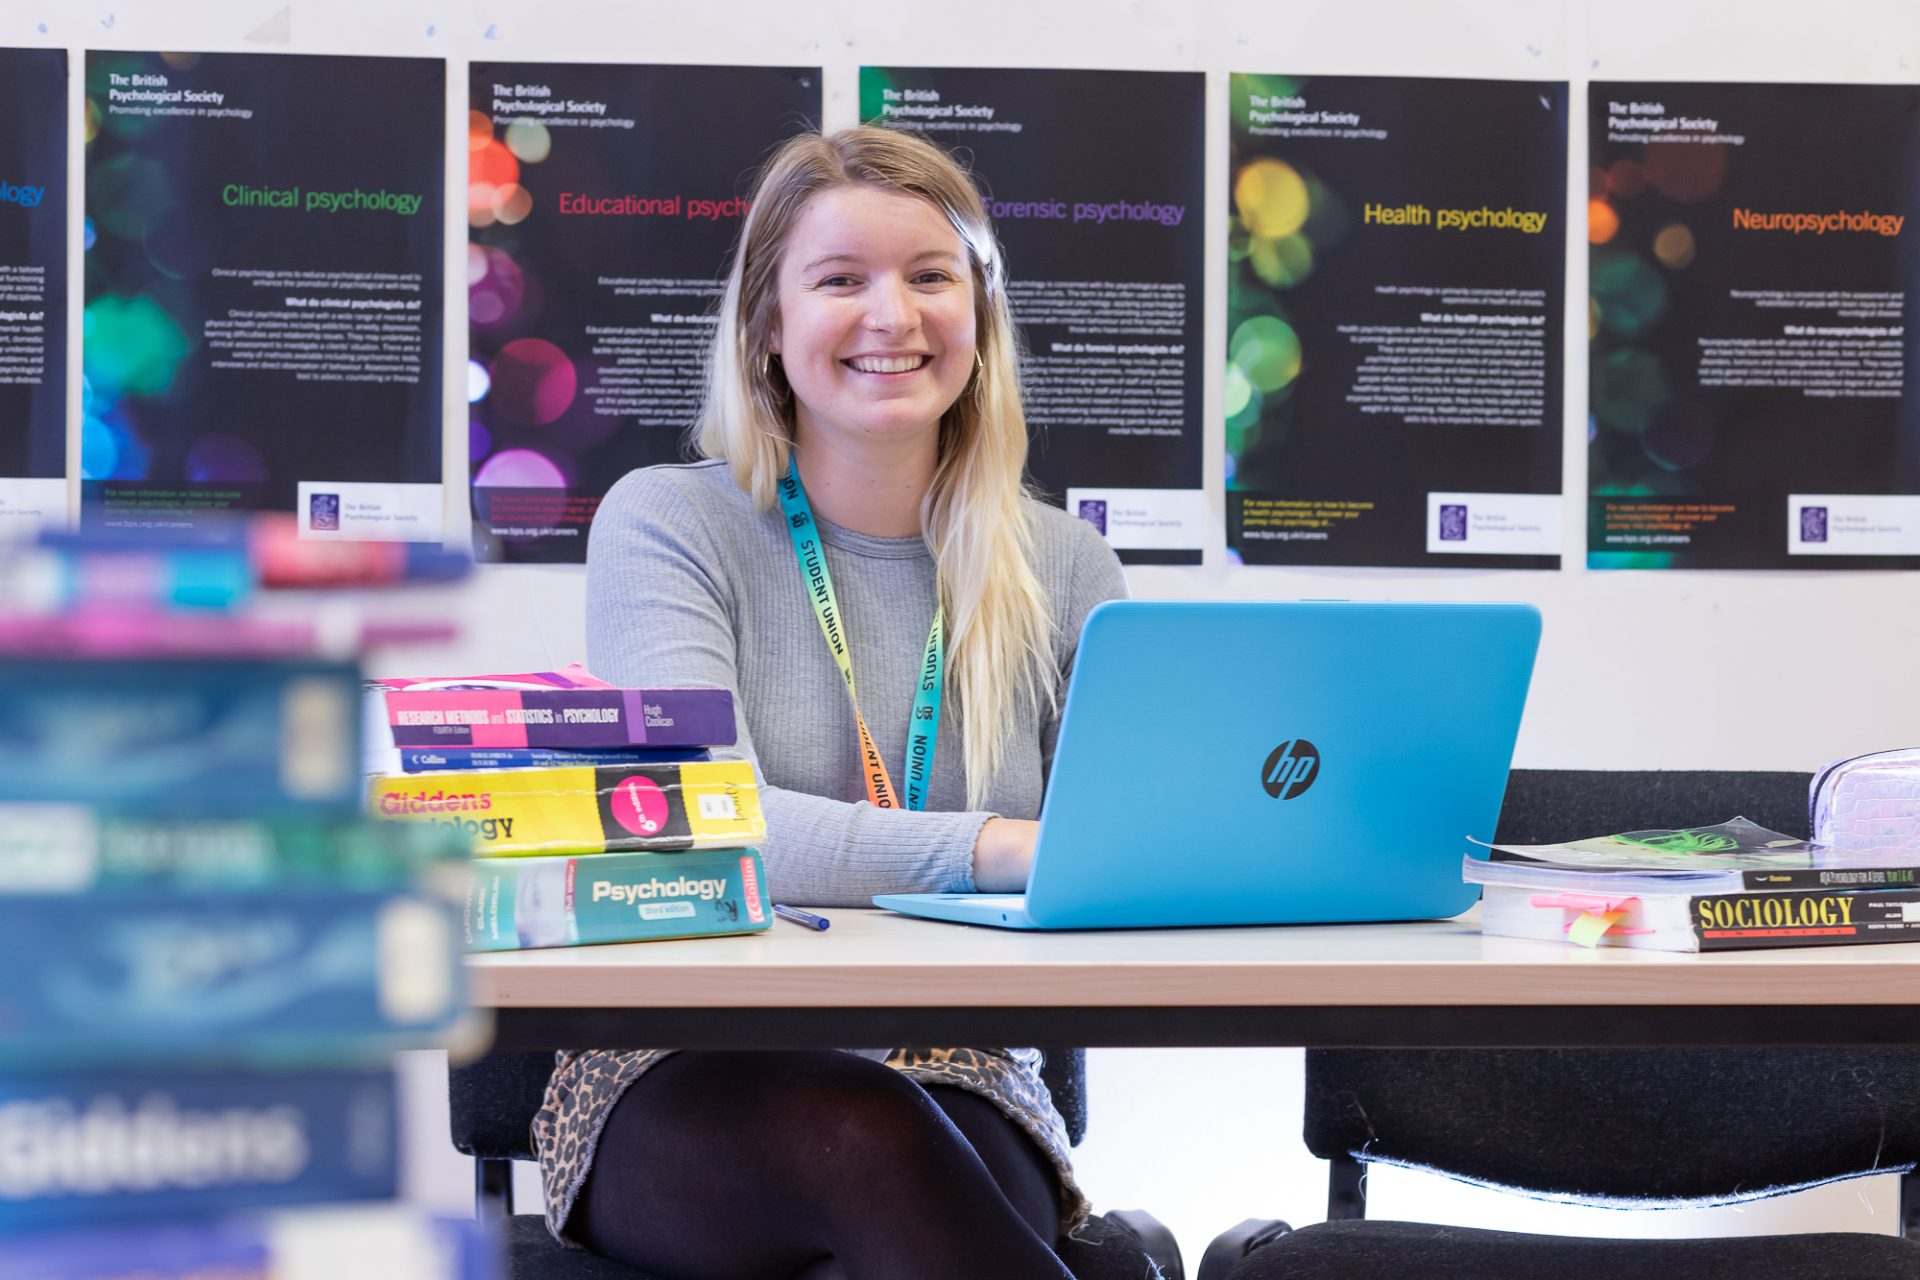 Woman sitting at desk with laptop and biology text books